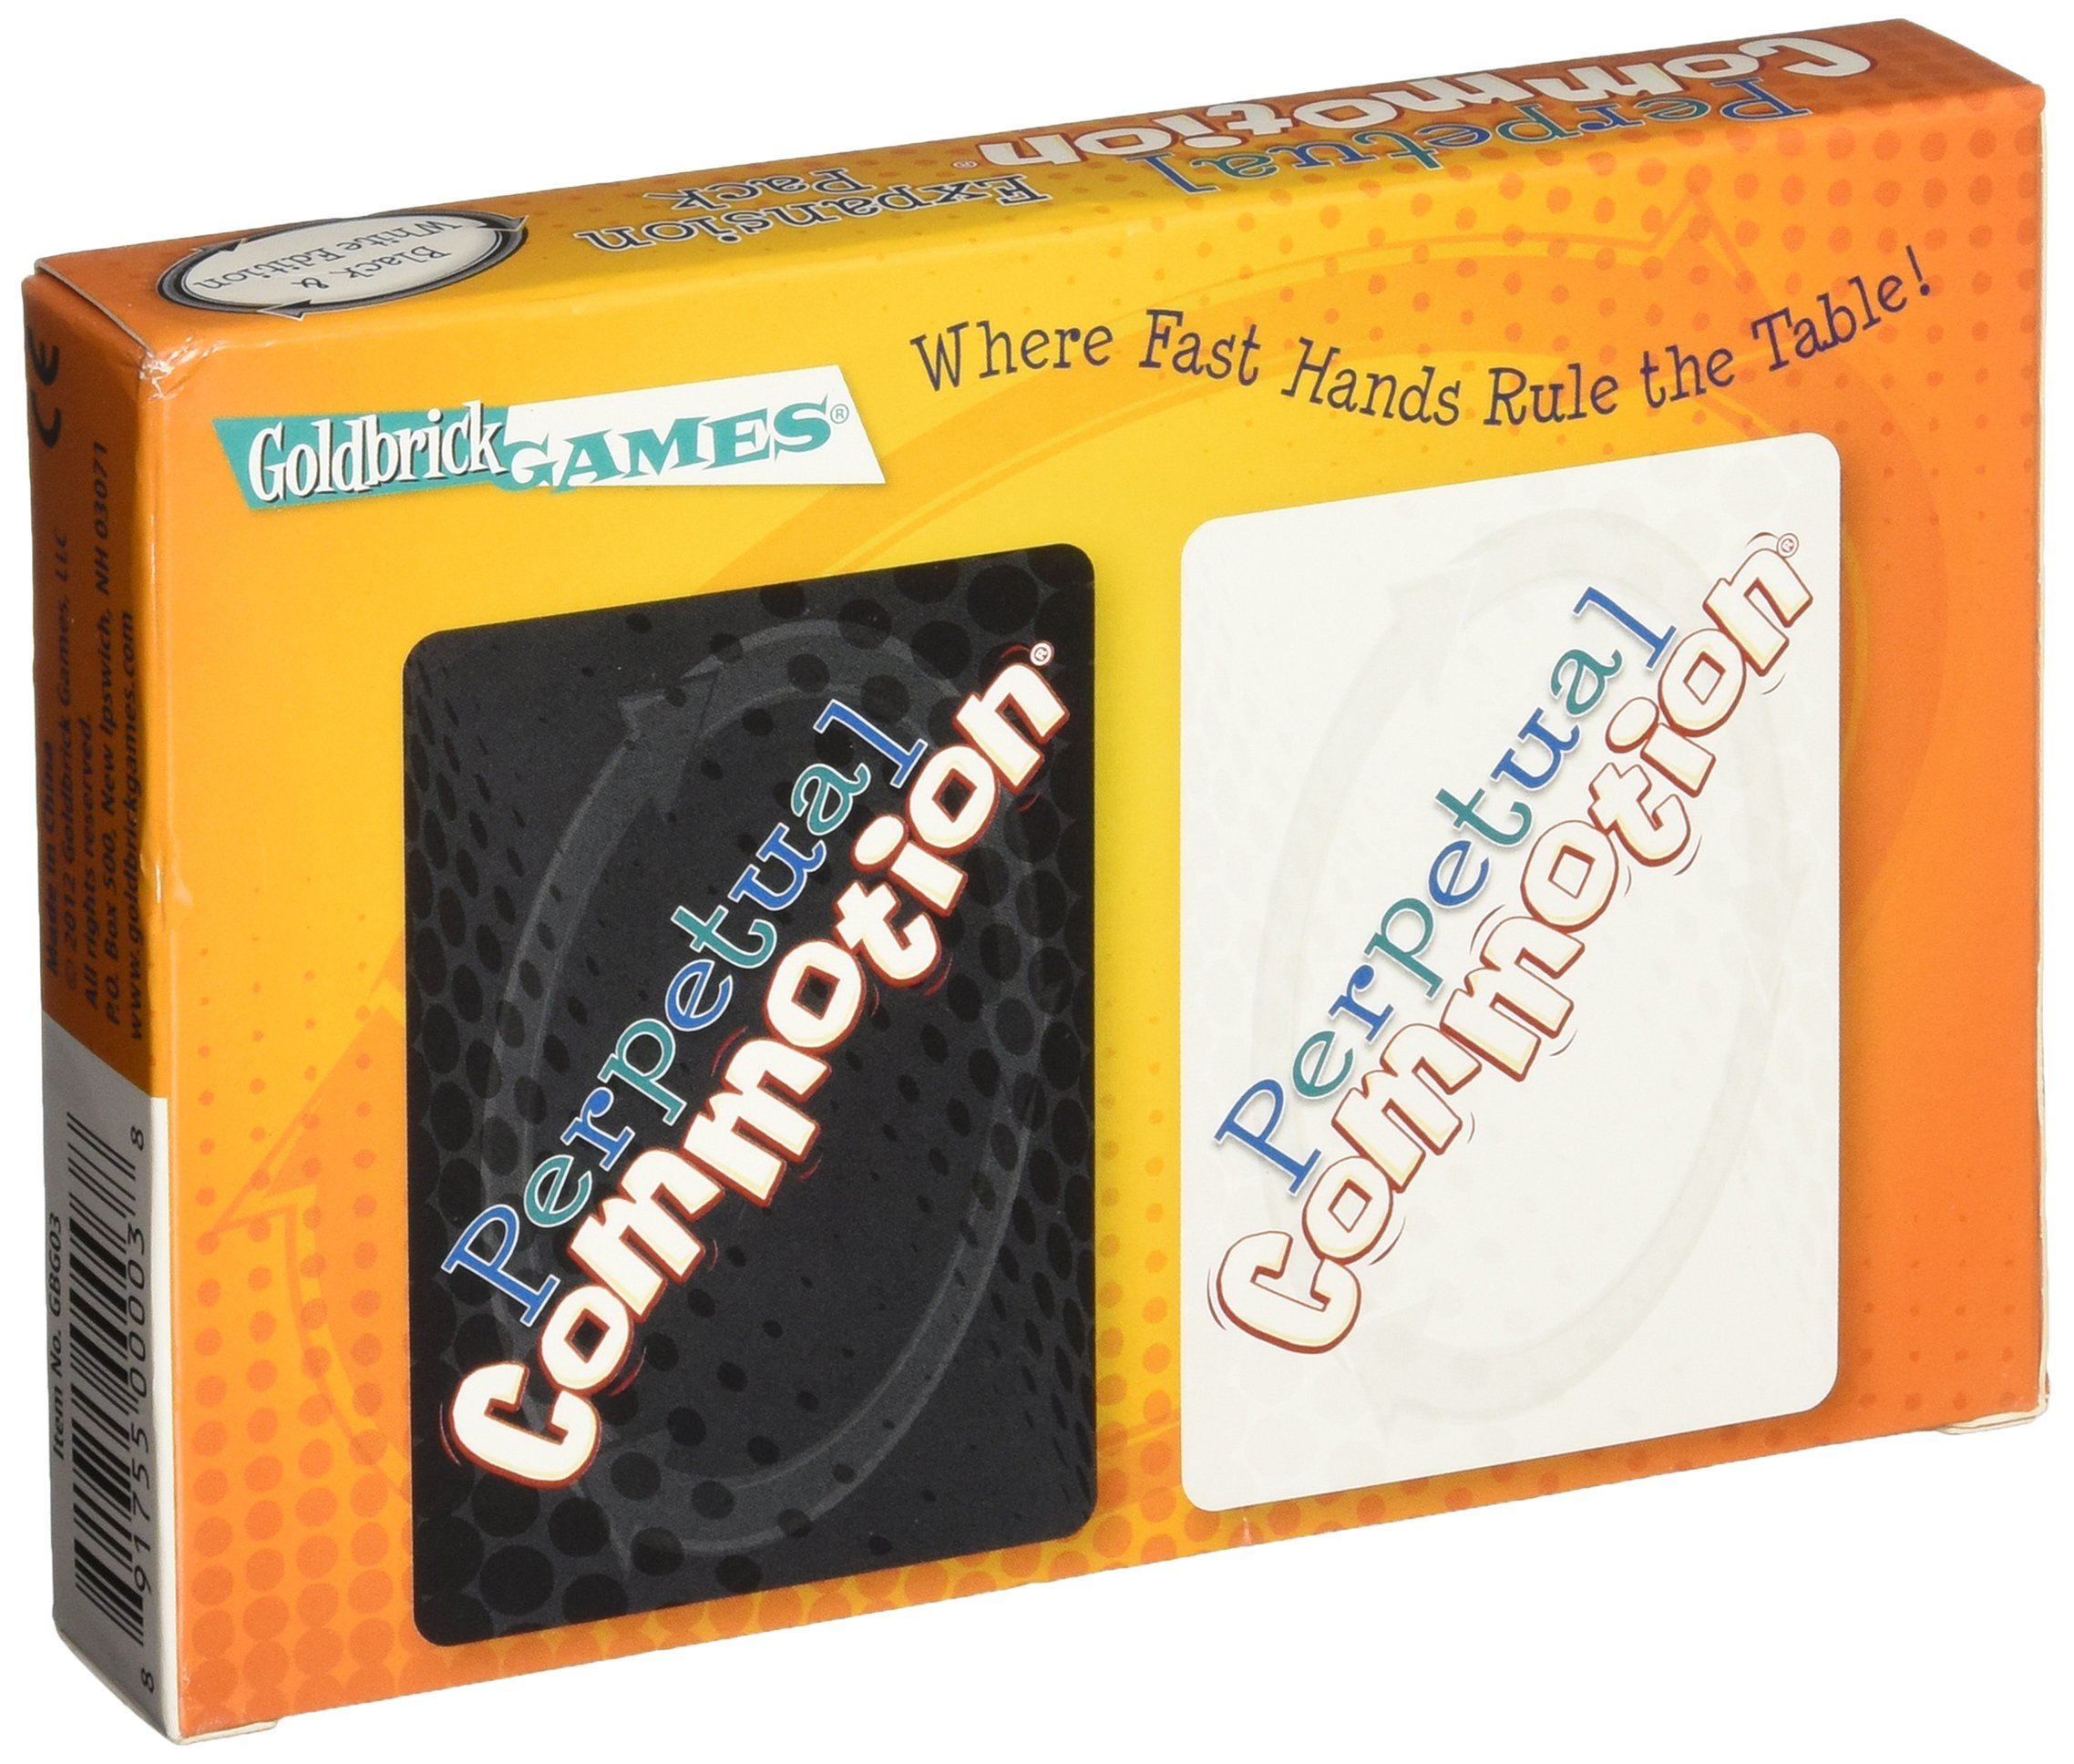 Perpetual Commotion Expansion Pack - Black & White